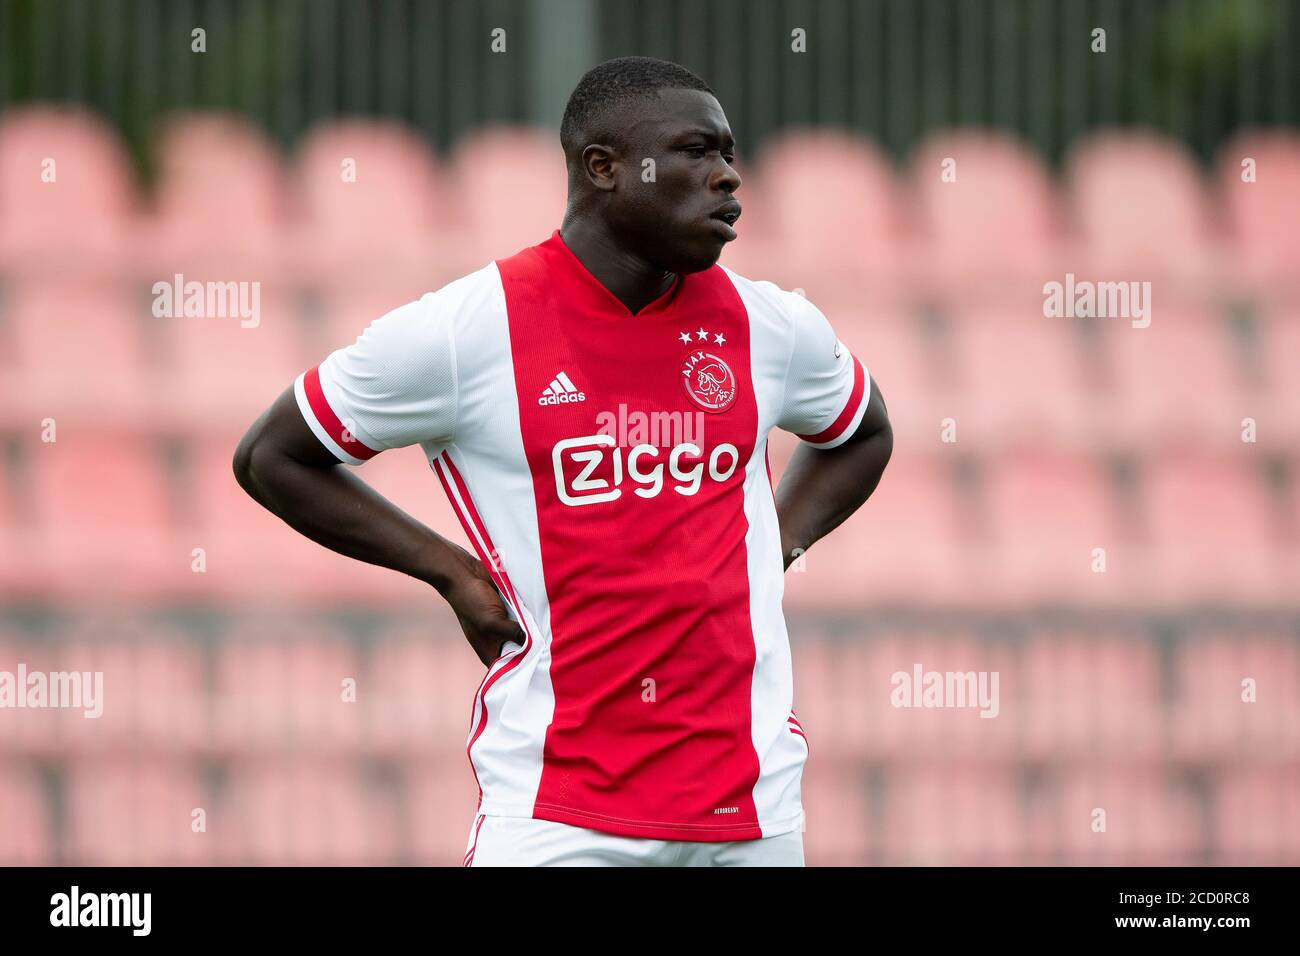 Amsterdam Netherlands 25th Aug 2020 Amsterdam 25 08 2020 Sportpark De Toekomst Football Friendly Testmatch Season 2020 2021 Ajax Holstein Kiel Ajax Player Brian Brobbey Credit Pro Shots Alamy Live News Stock Photo Alamy